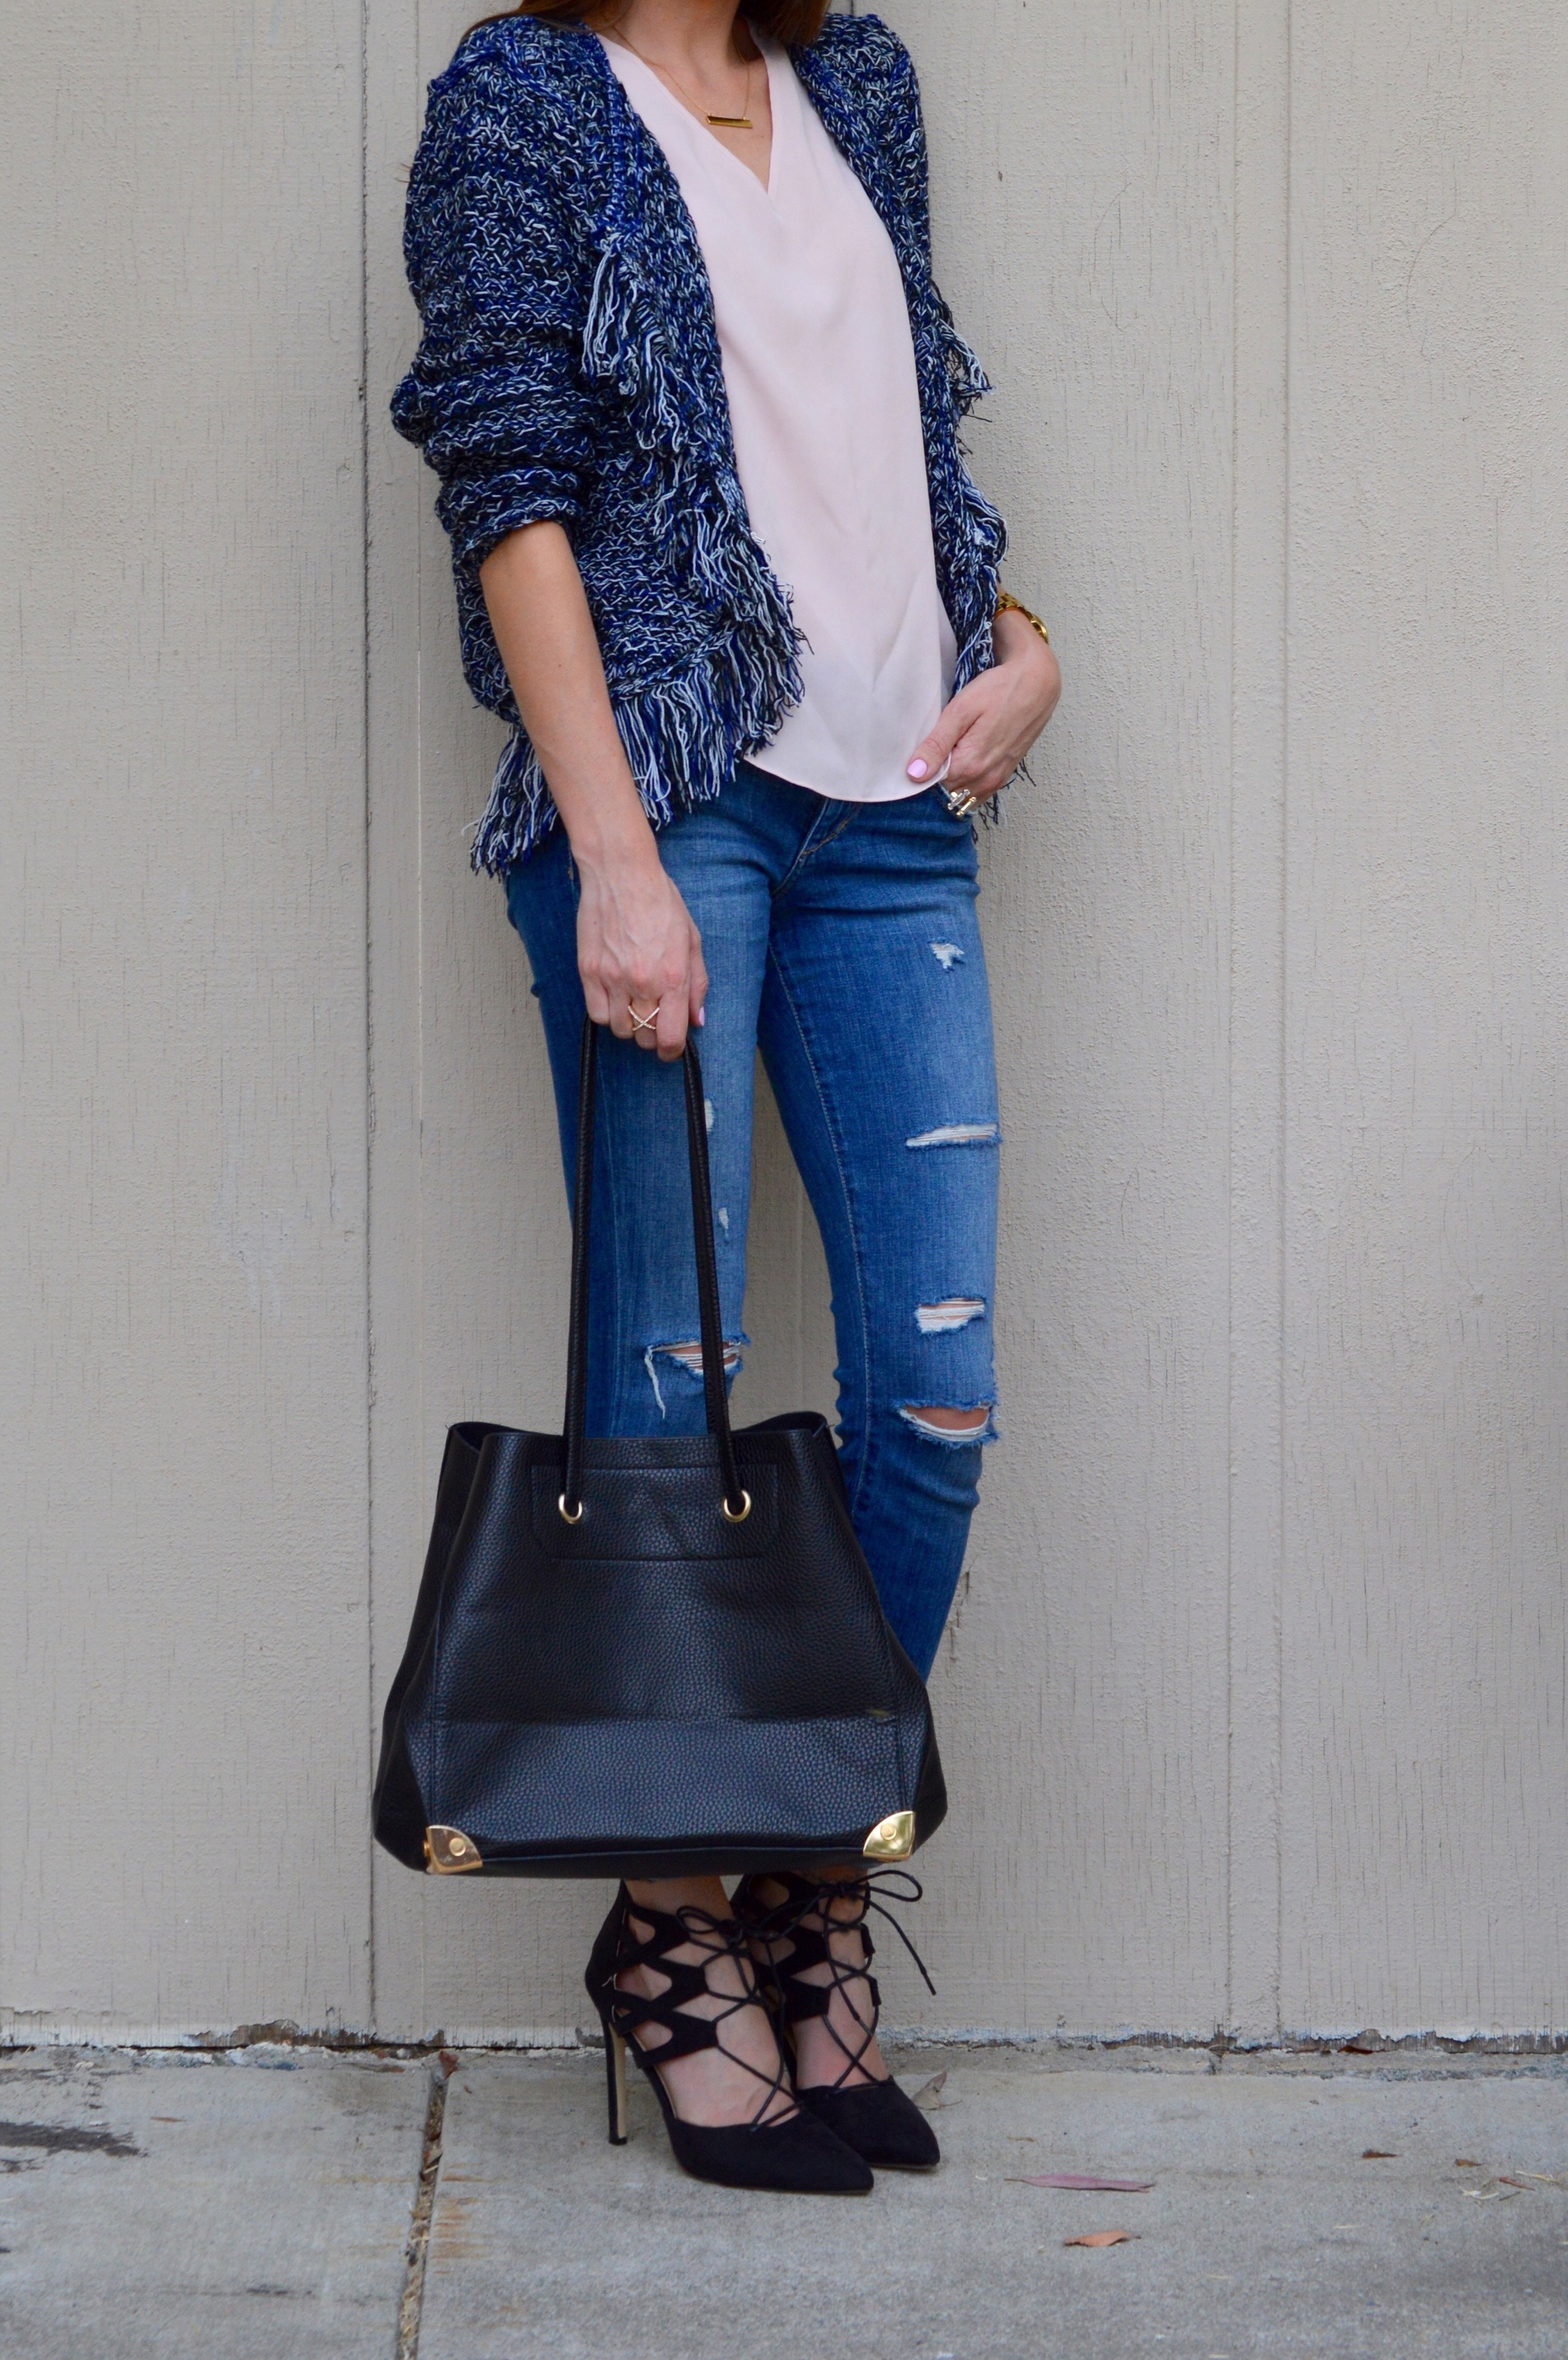 Shop the Look Below. Jacket: c/o  Lookbook Store . Jeans: Joe's. Shoe: c/o  SheIn . Top: Revolve . Bag: c/o  Lookbook Store . Sunglasses: Old--see similar  here and  here (for $12!) Watch: Michael Kors . Necklace: c/o  BaubleBar --waitlisted, but similar  here .